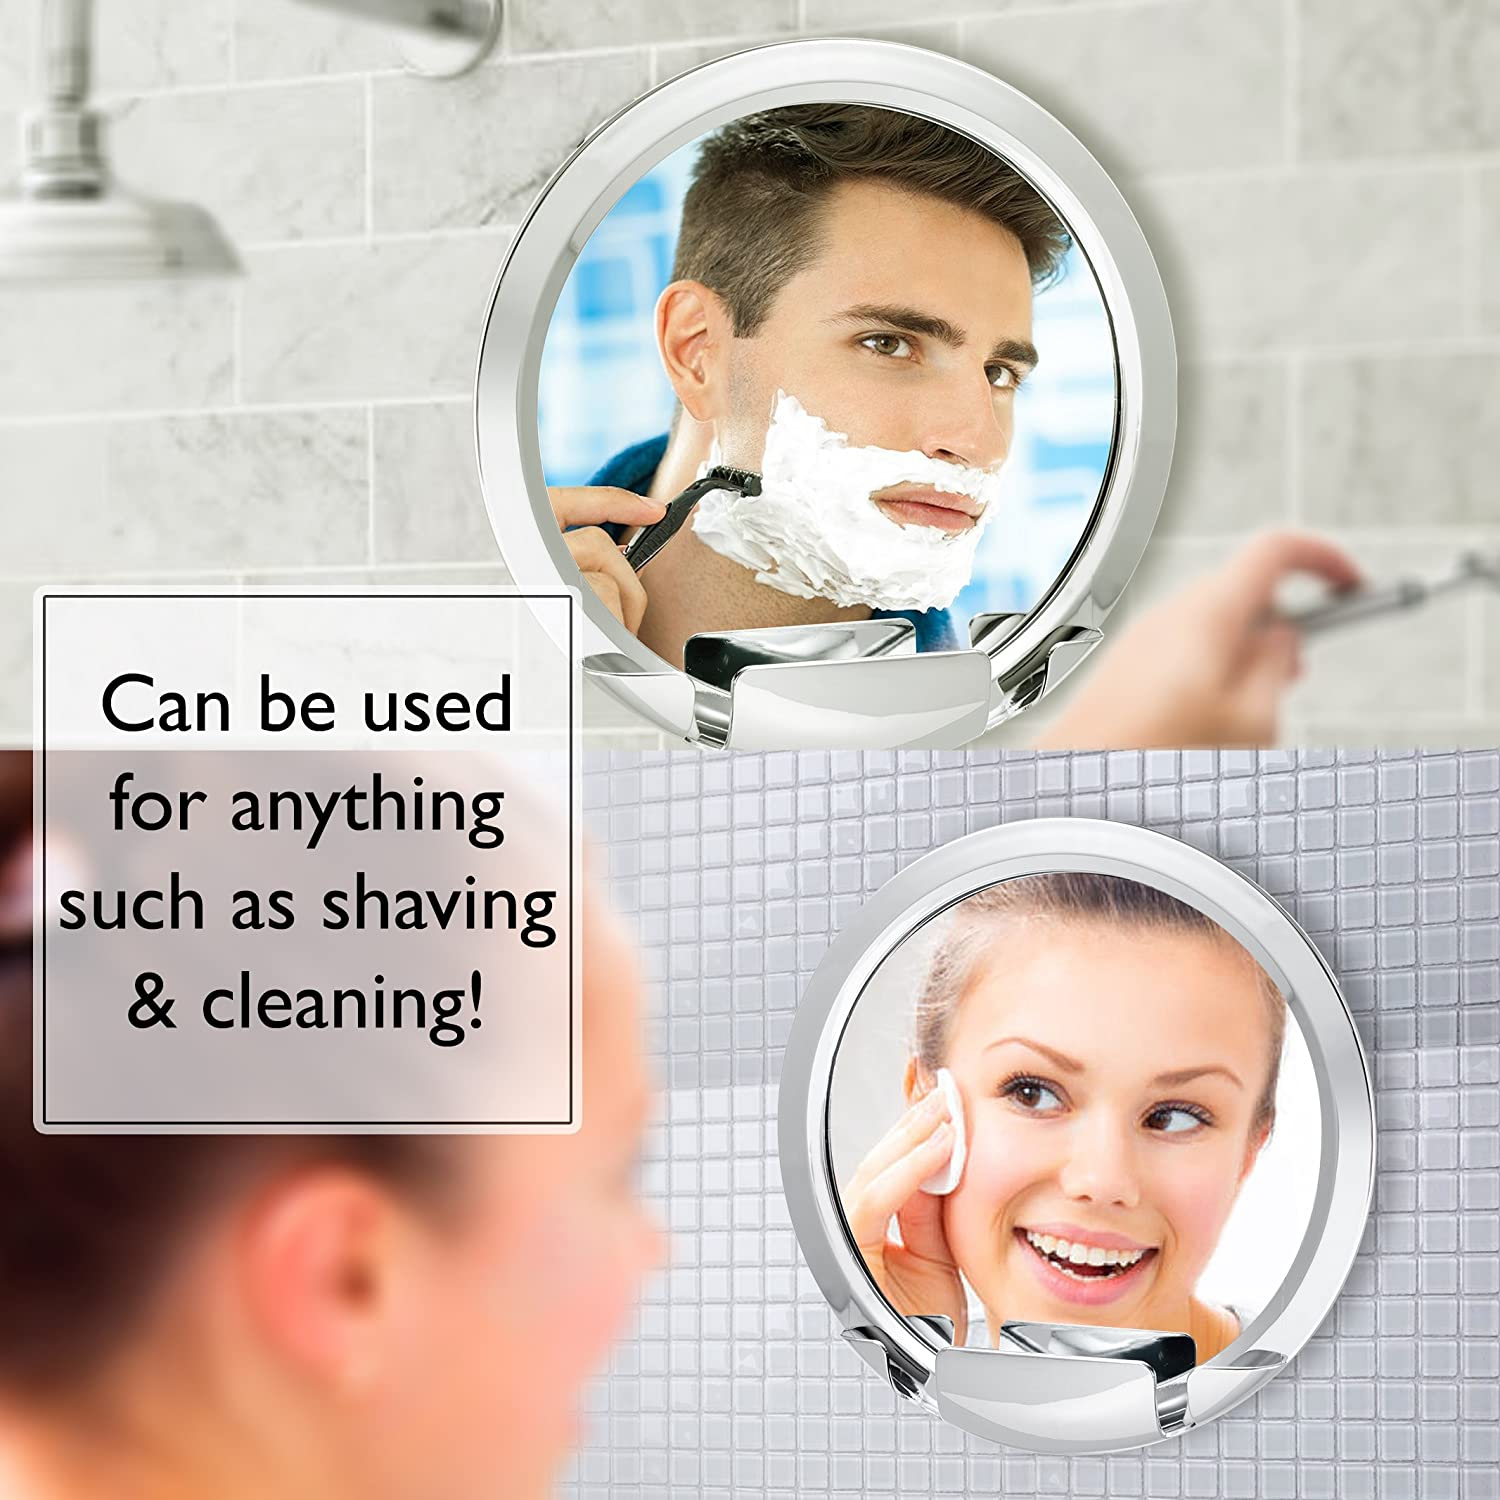 Fogless Shower Mirror with Built-In Razor Holder 360 Rotation Real Fog-Free Shaving Adjustable Arm Shatterproof Rust-Resistant Non-Fogging Bathroom Mirror for Men and Women